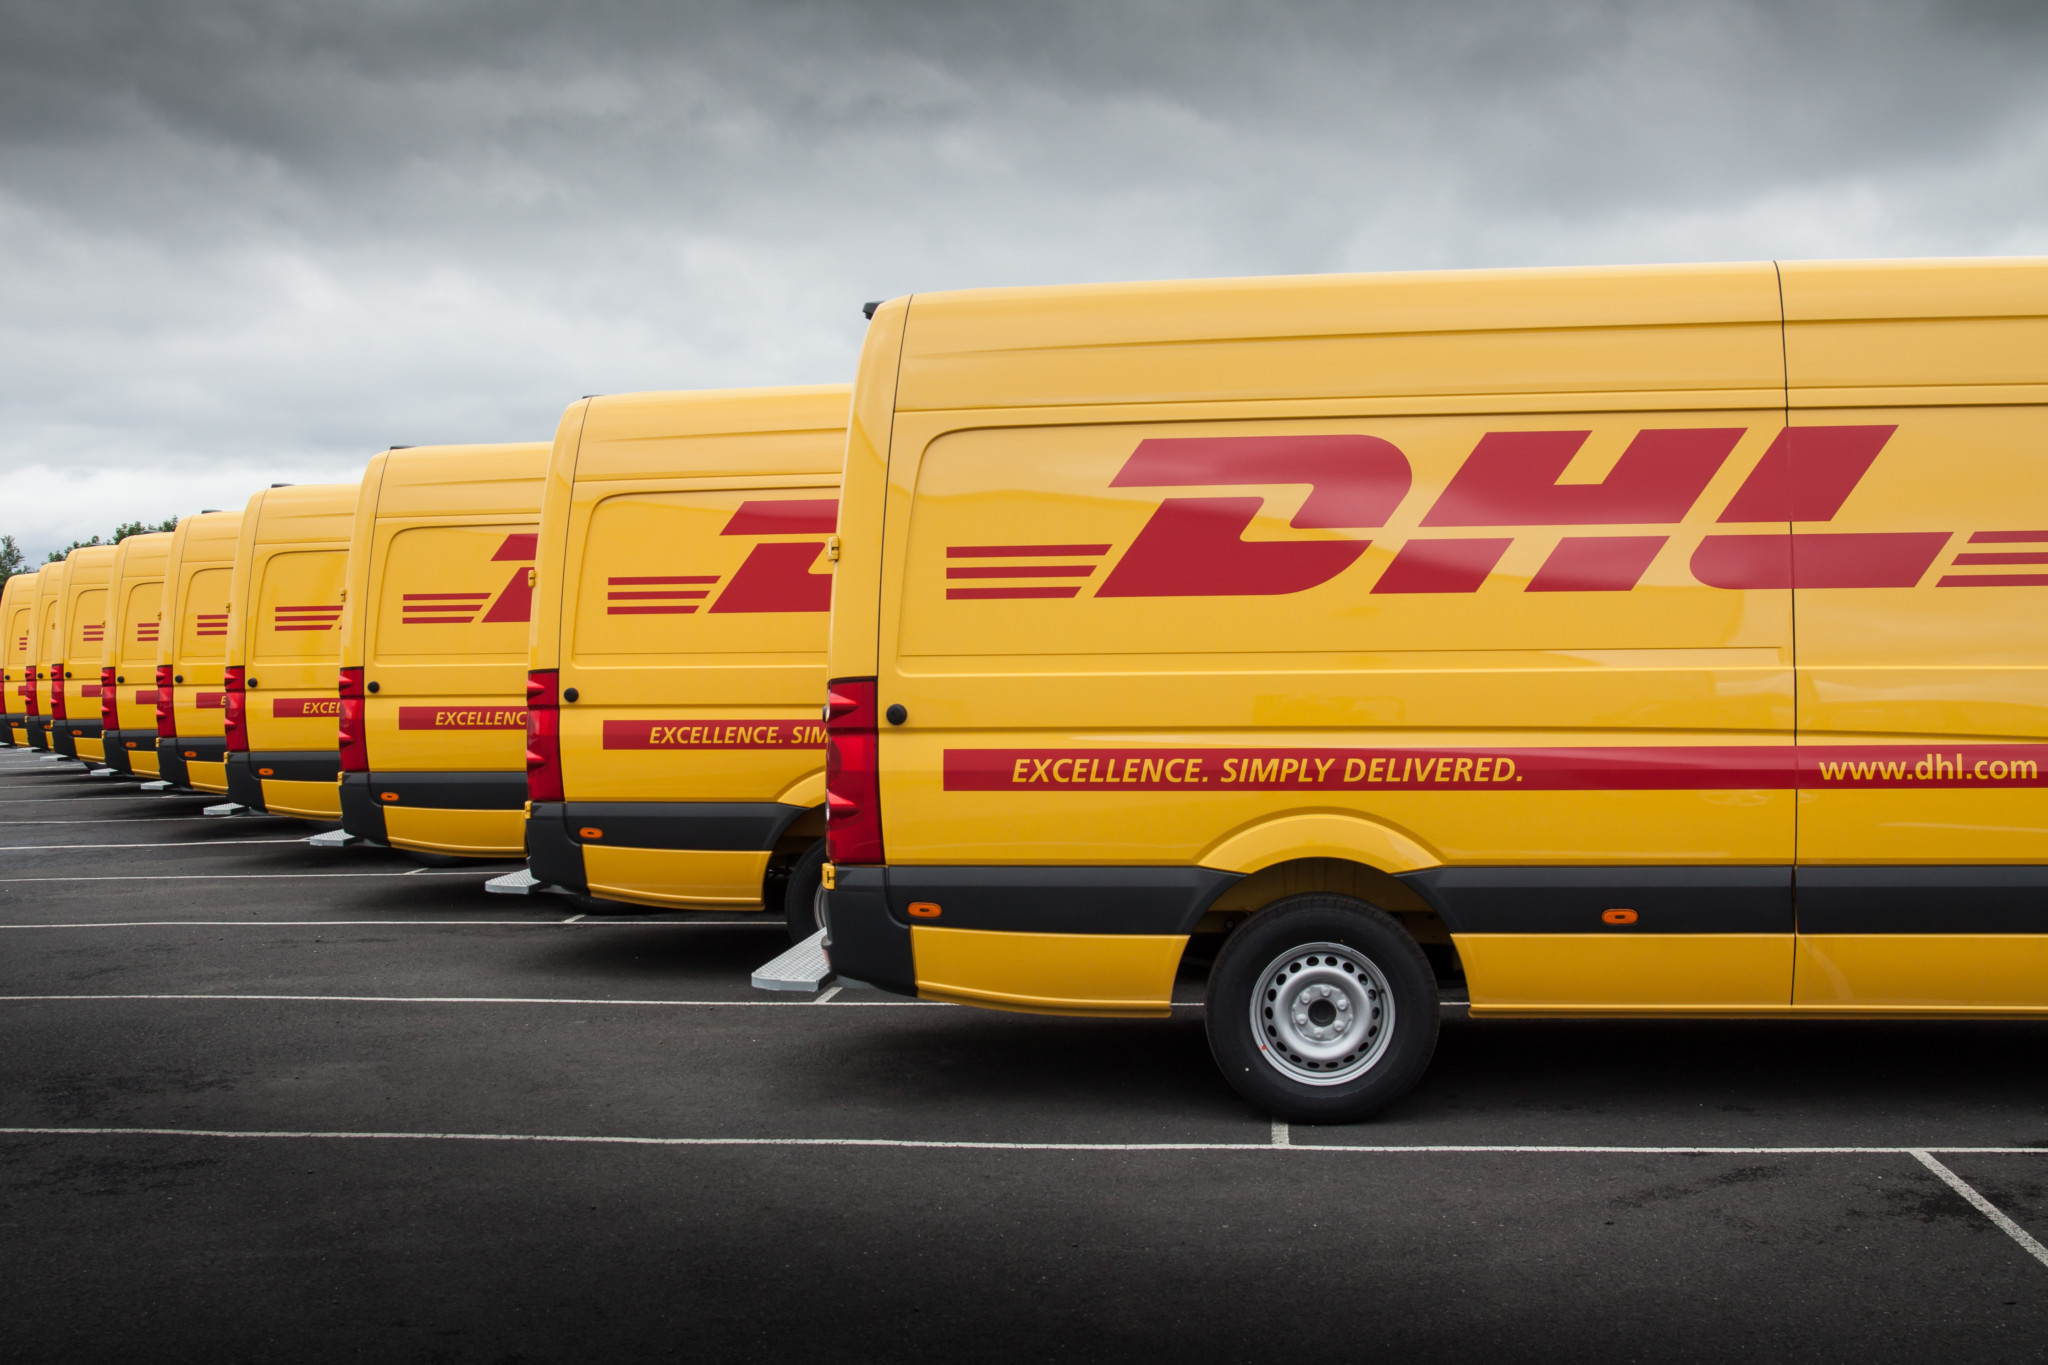 Dhl Increases Rates By 4 9 In 2018 Fleet News Daily